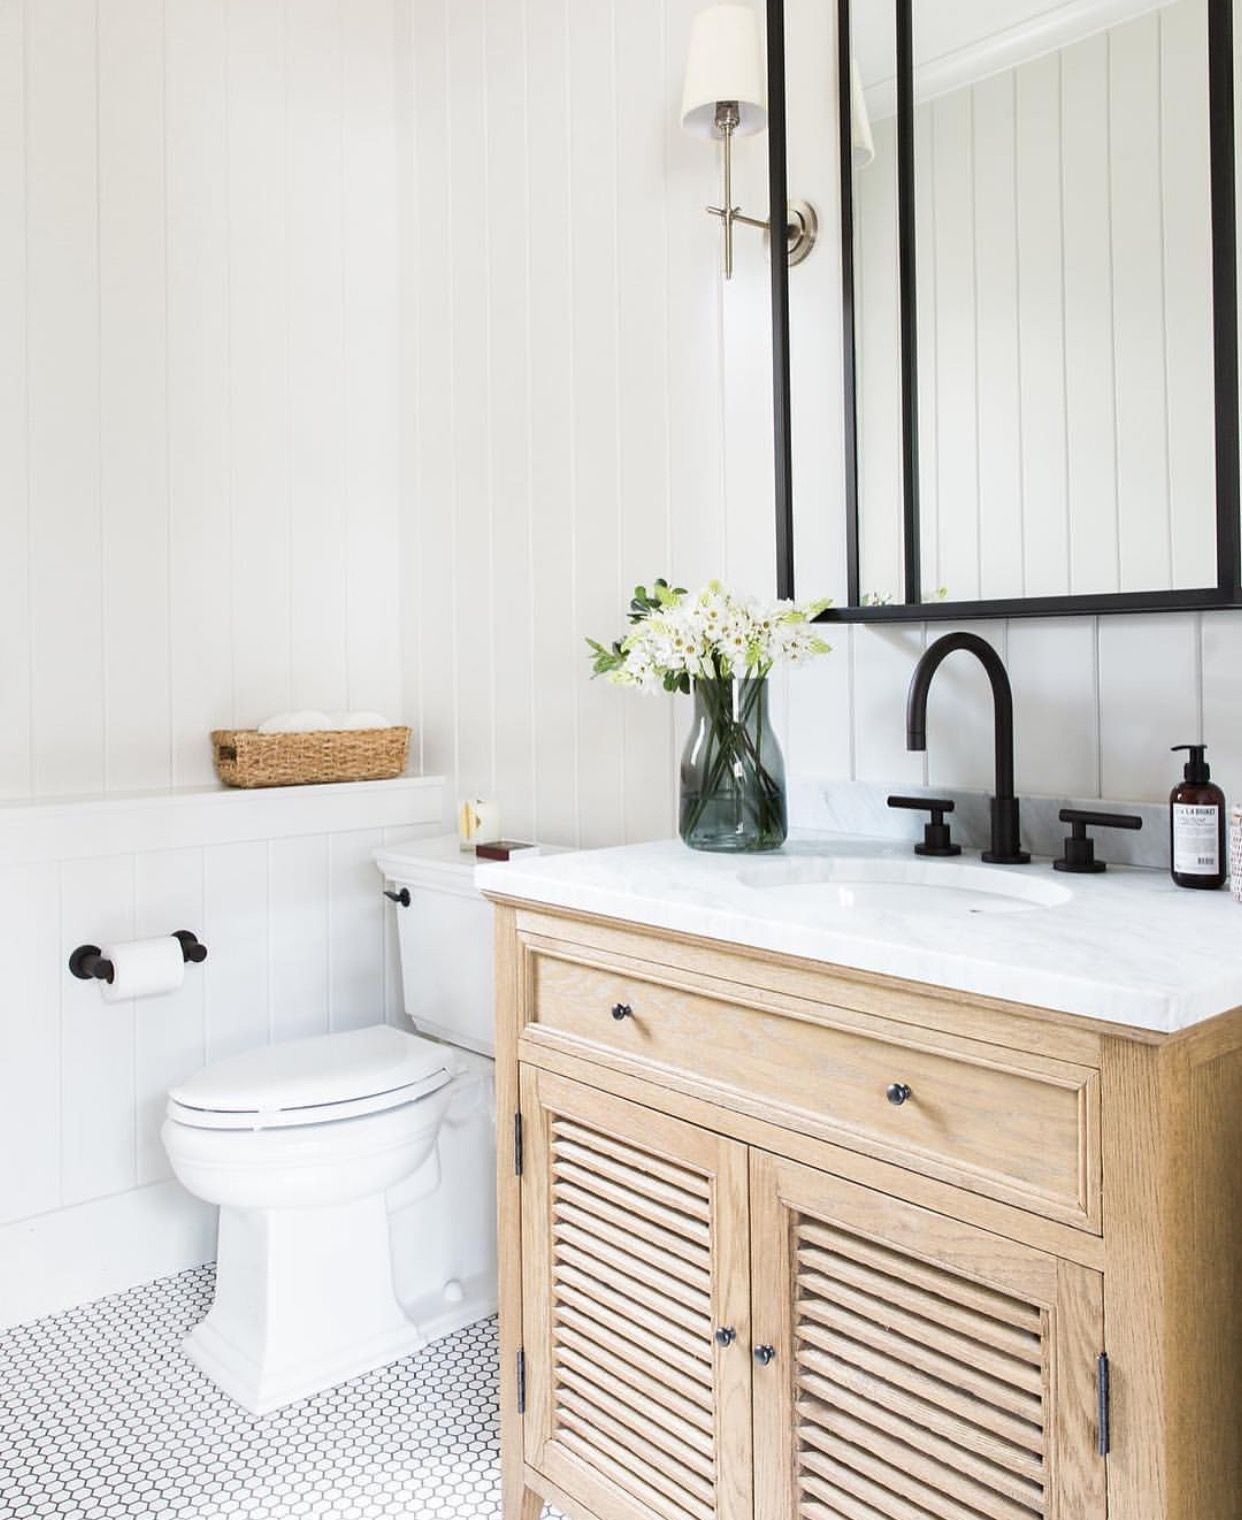 Light wood vanity and black accents in a bathroom bathroom light wood vanity and black accents in a bathroom aloadofball Image collections